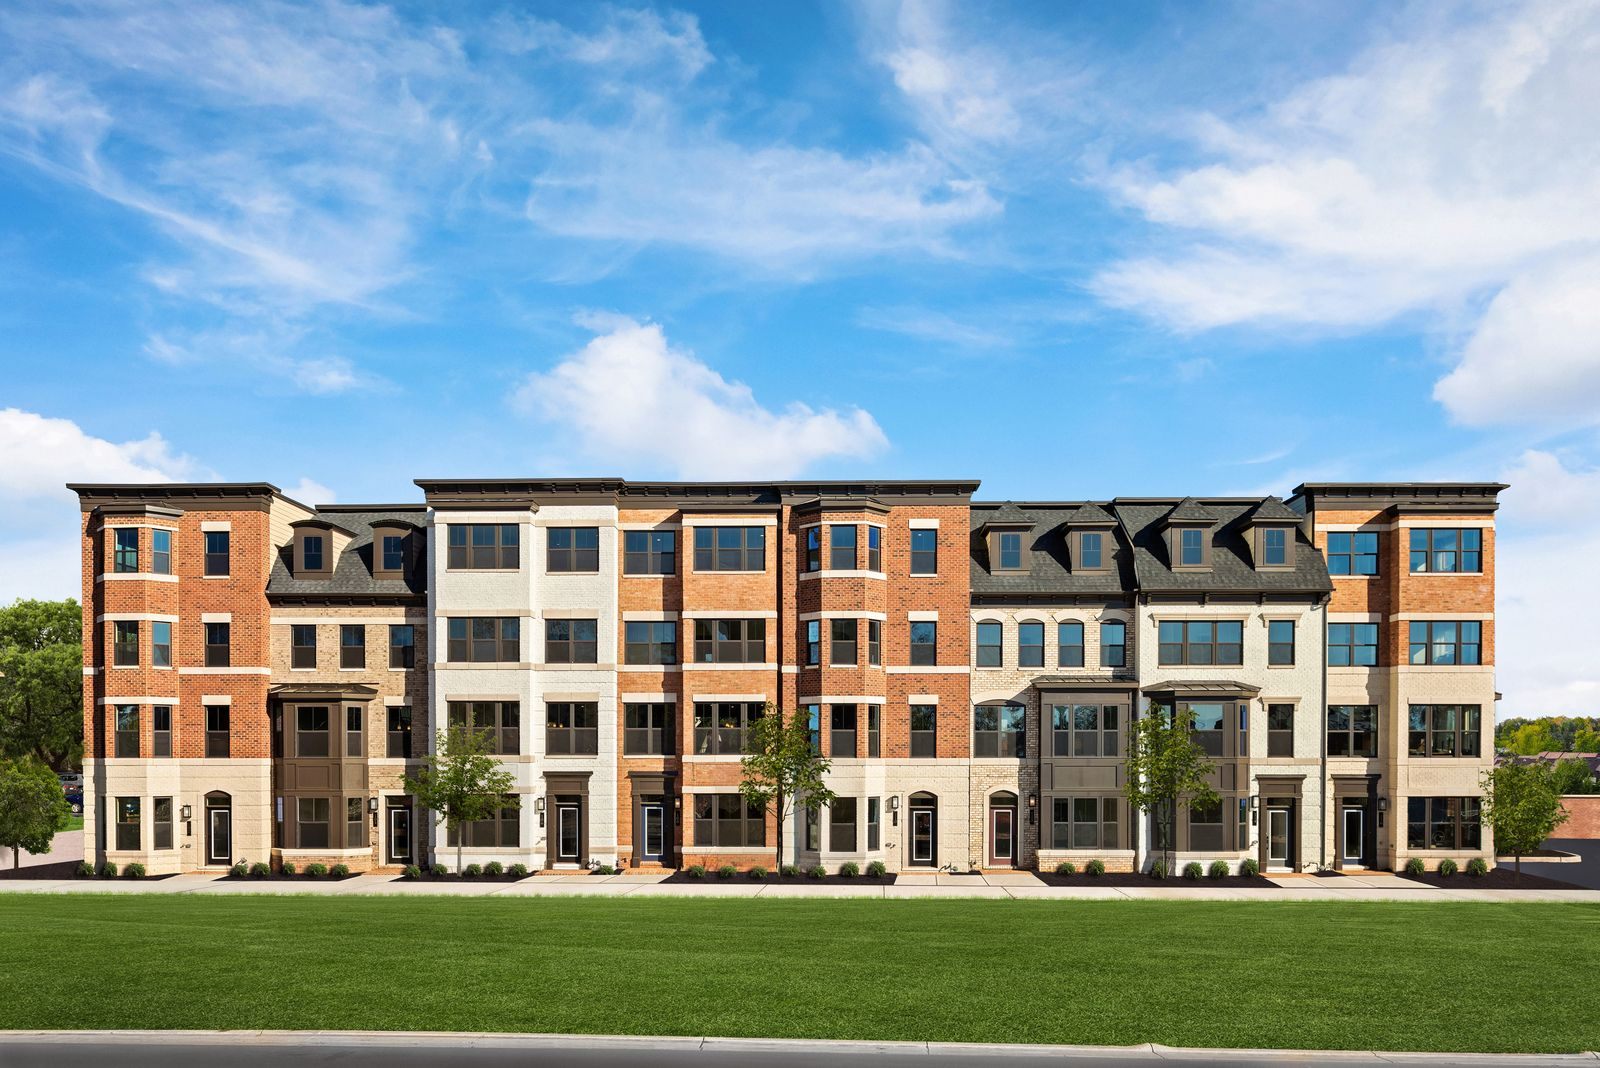 STATELY NV TOWNHOMES IN THE TOWN OF VIENNA:Discover our boutique collection of just 38 residences, located within walking distance of shops, dining, and more. Sales are underway.Schedule a visit today!